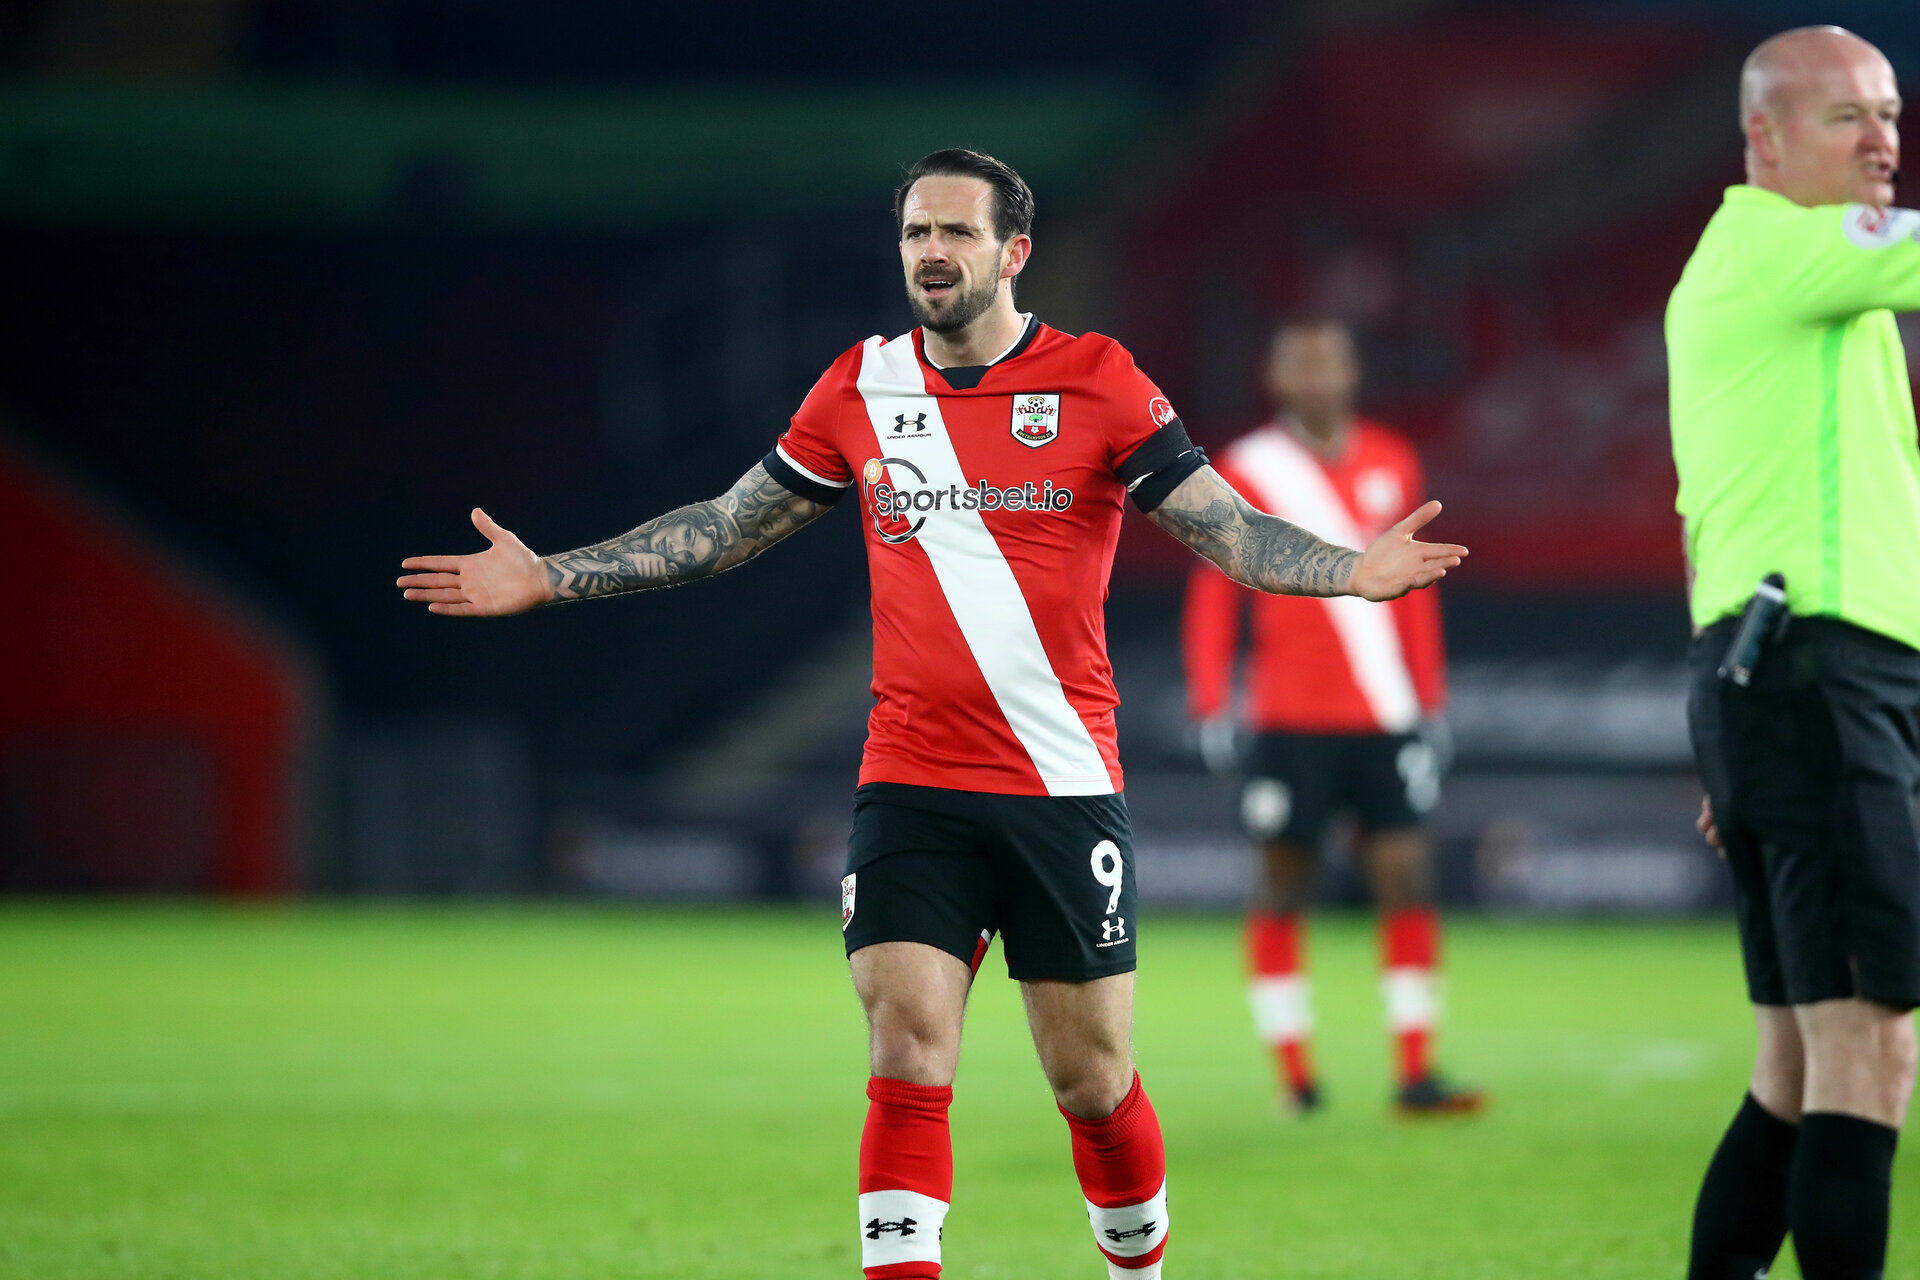 SOUTHAMPTON, ENGLAND - JANUARY 30: Danny Ings of Southampton  during the Premier League match between Southampton and Aston Villa at St Mary's Stadium on January 30, 2021 in Southampton, England. Sporting stadiums around the UK remain under strict restrictions due to the Coronavirus Pandemic as Government social distancing laws prohibit fans inside venues resulting in games being played behind closed doors. (Photo by Matt Watson/Southampton FC via Getty Images)